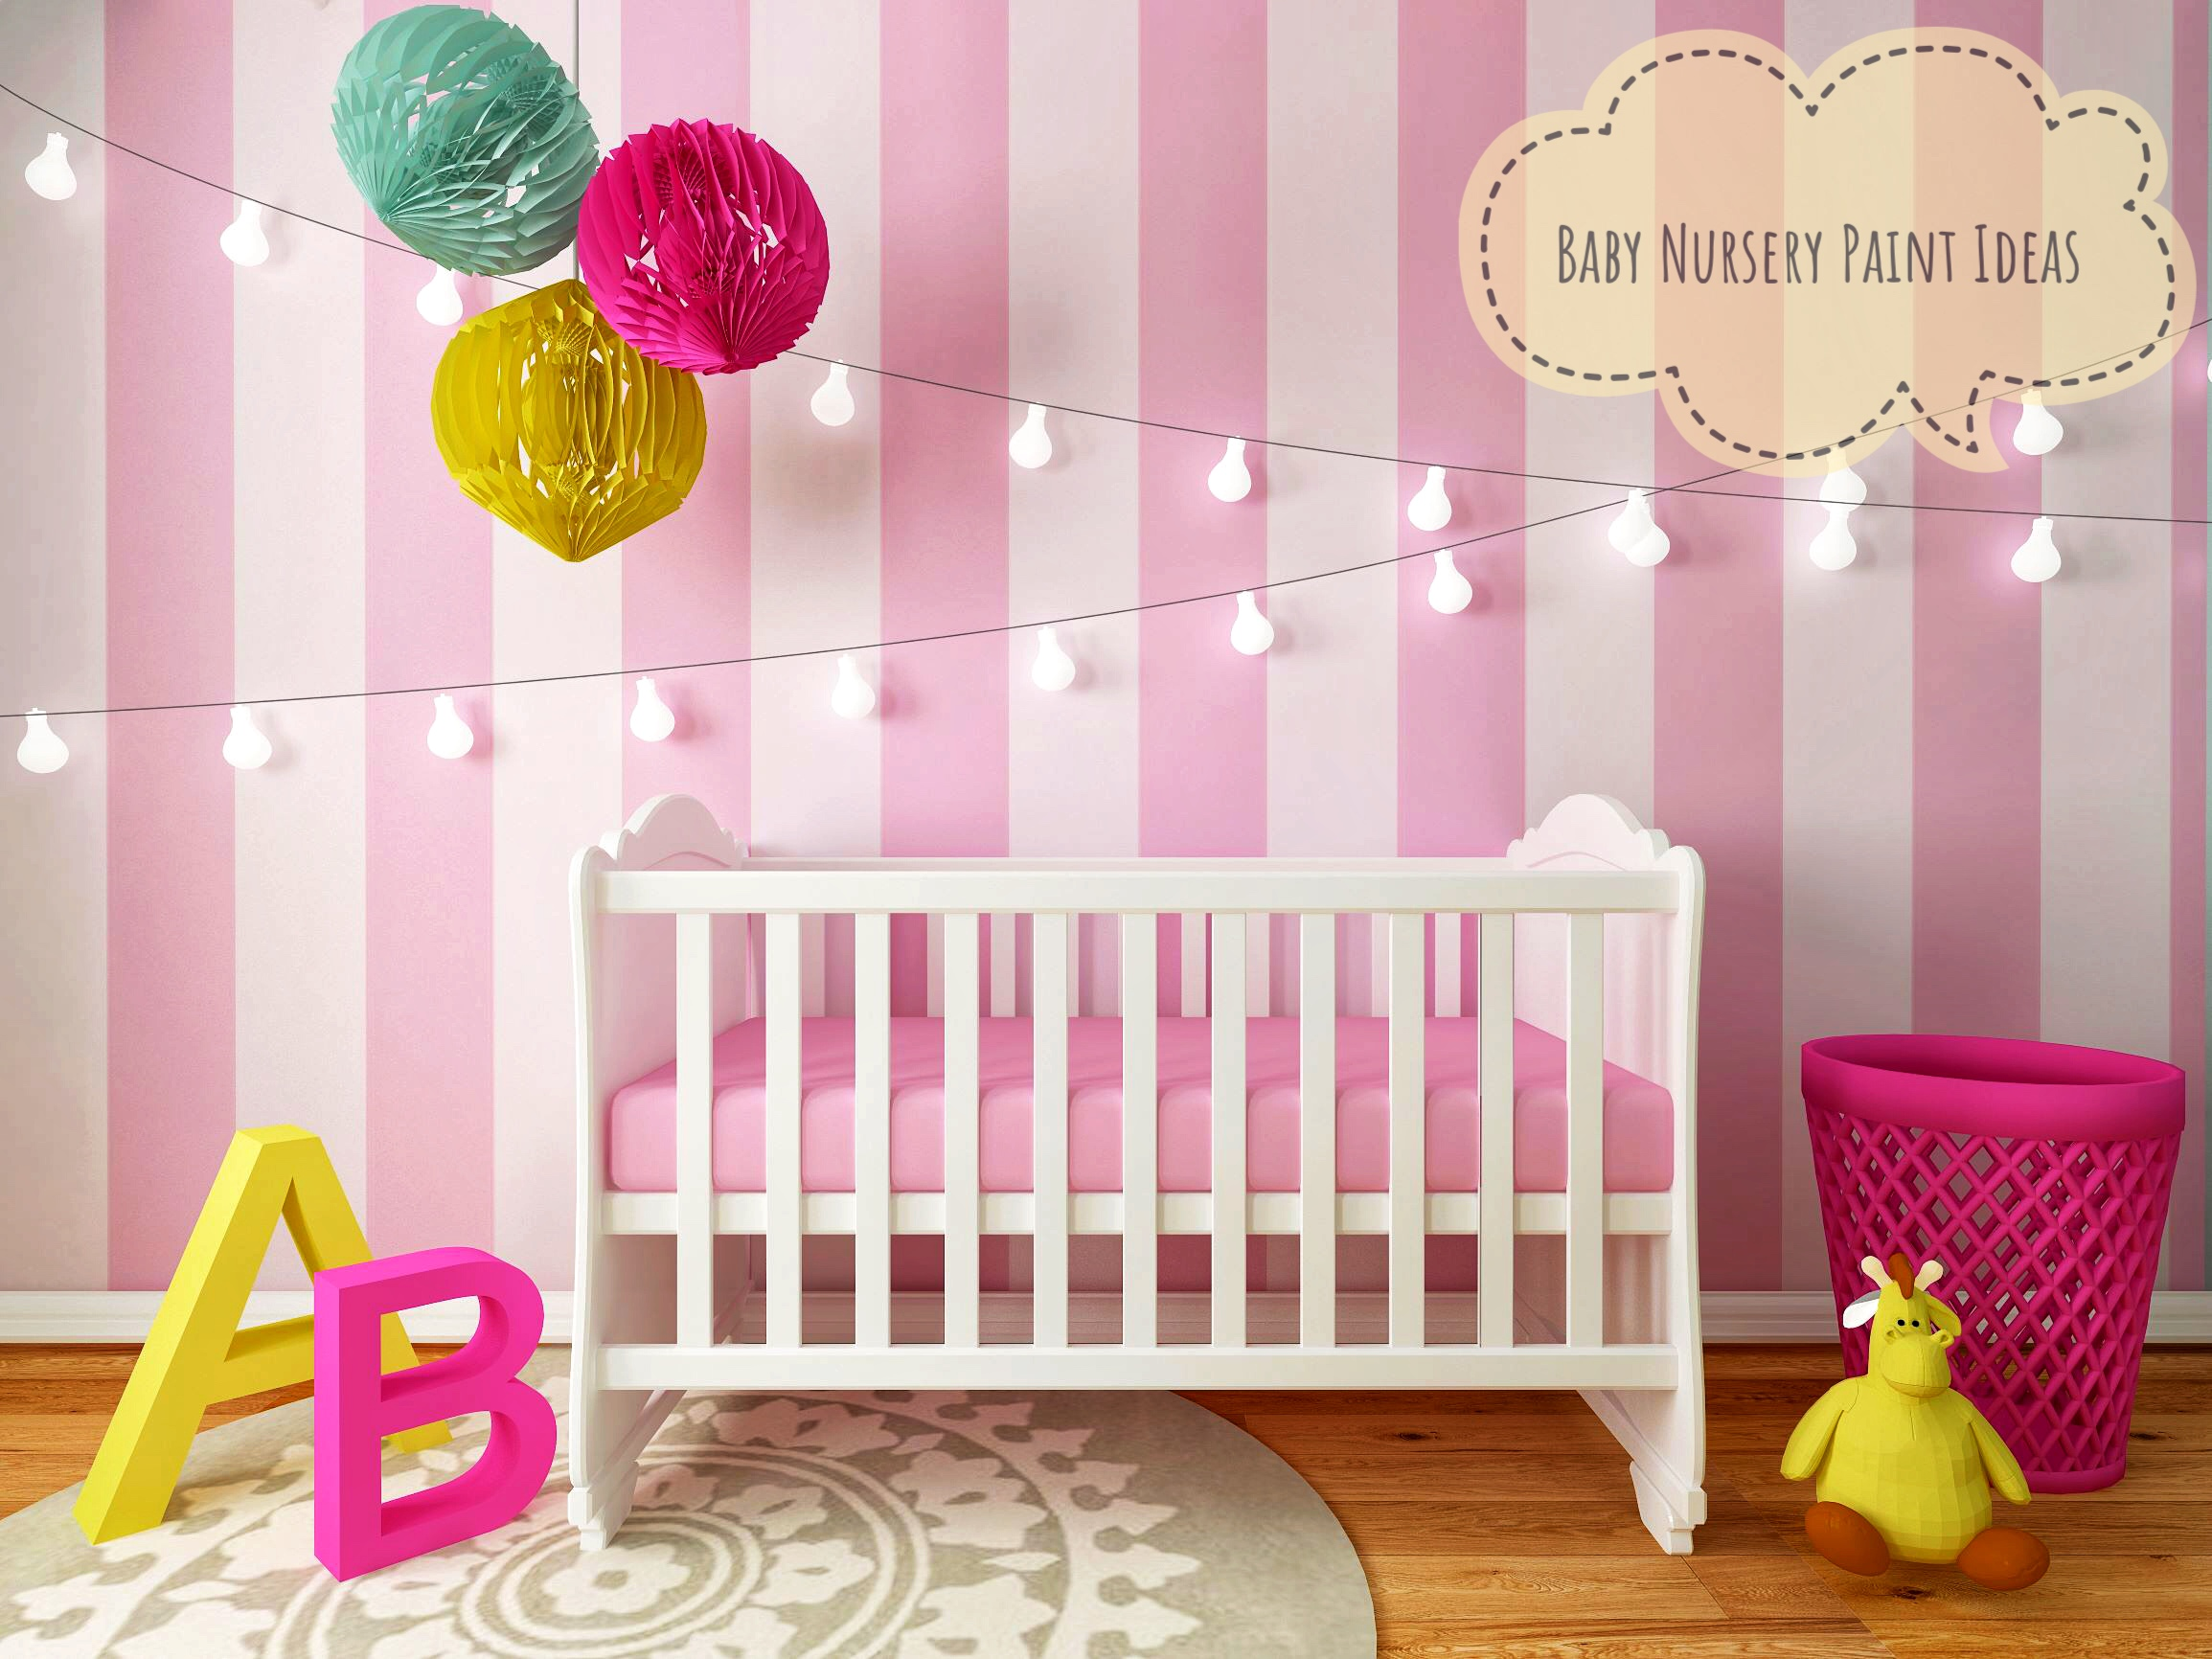 Baby Nursery Paint Ideas